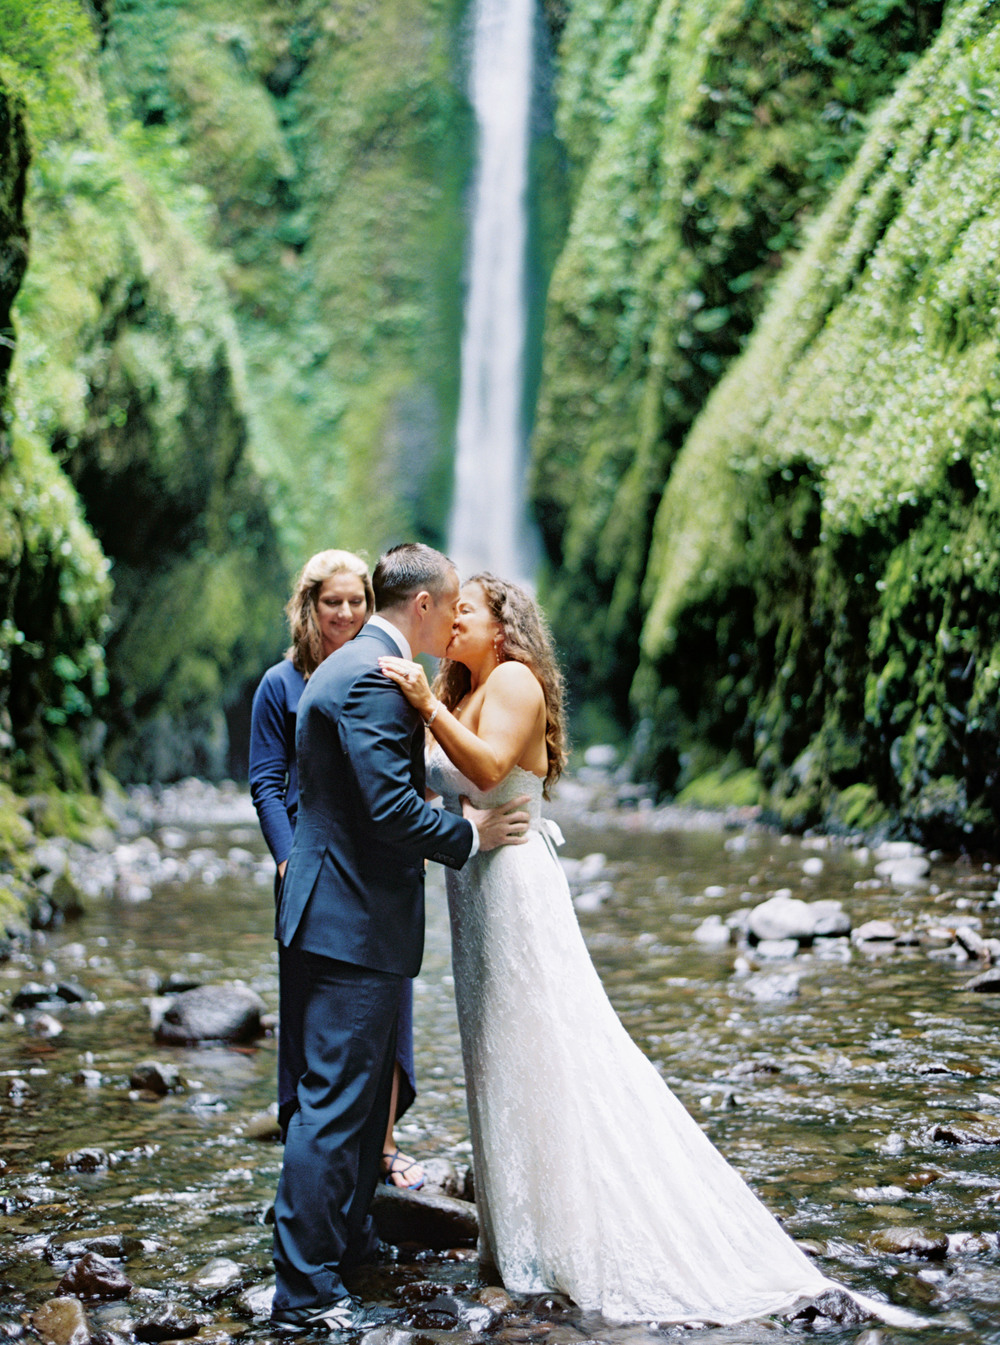 061OneontaGorge+Elopement+Photography+Videography+Oregon+OutliveCreative.jpg